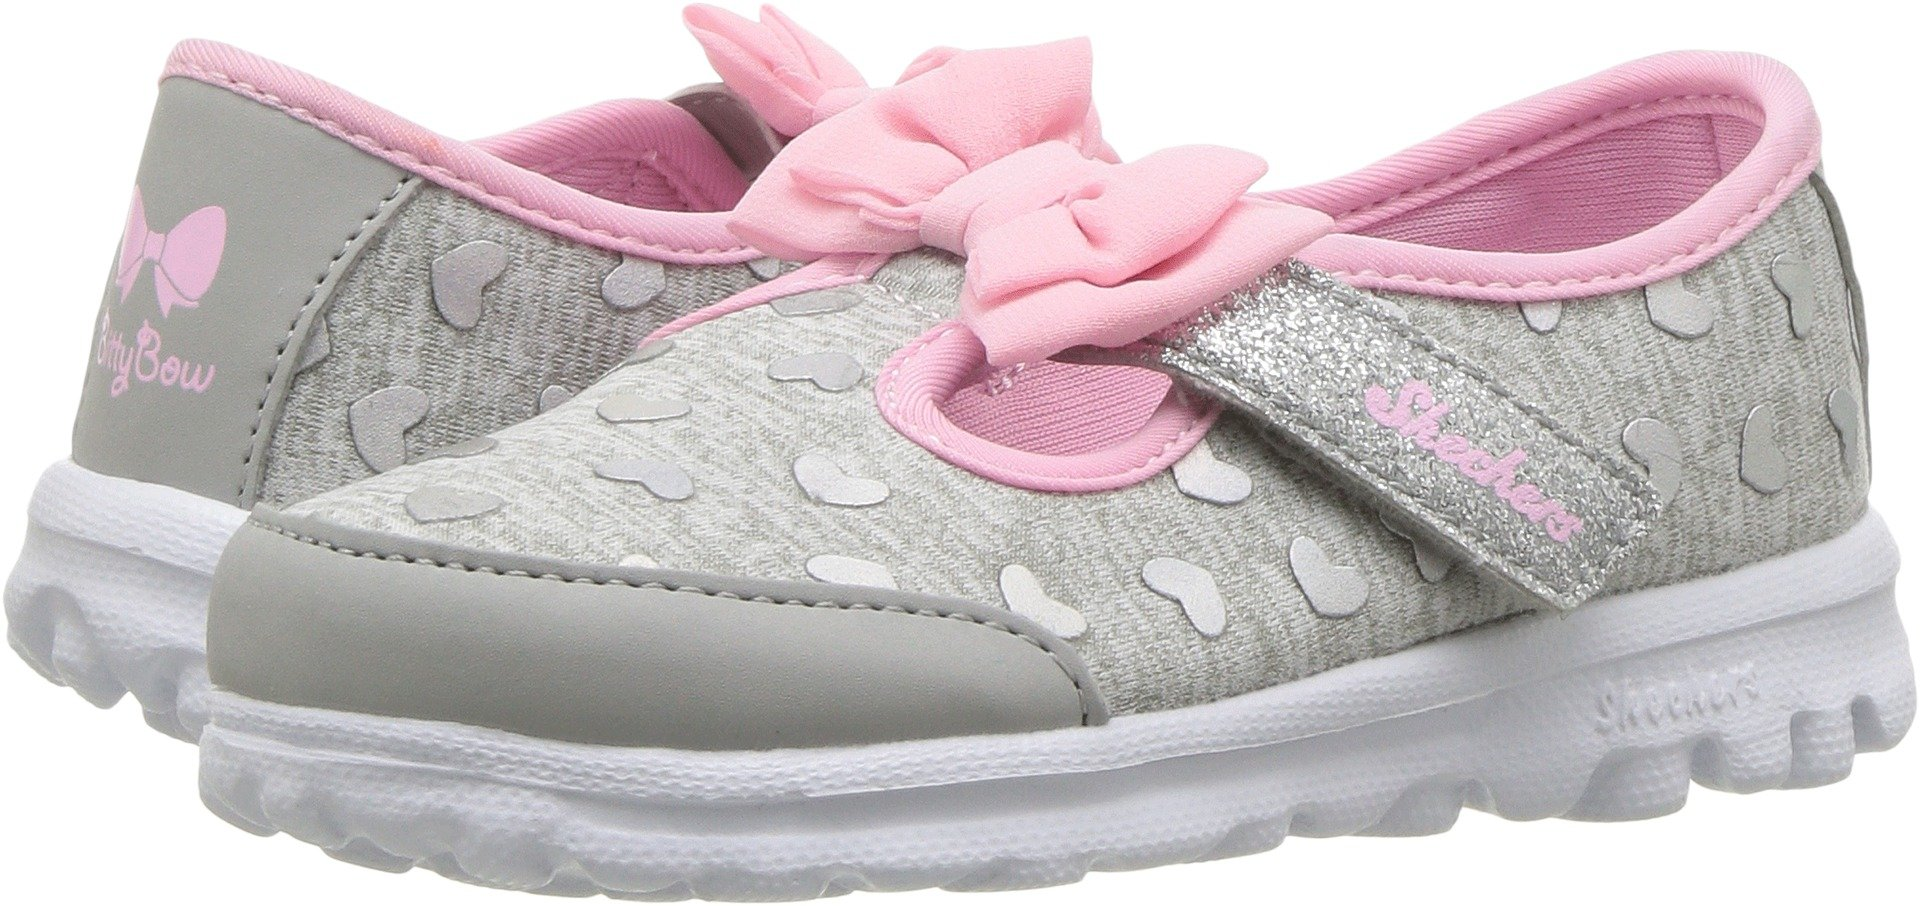 Skechers Go Walk-Bitty Hearts Girls' Infant-Toddler Slip On 10 M US Toddler Grey-Pink